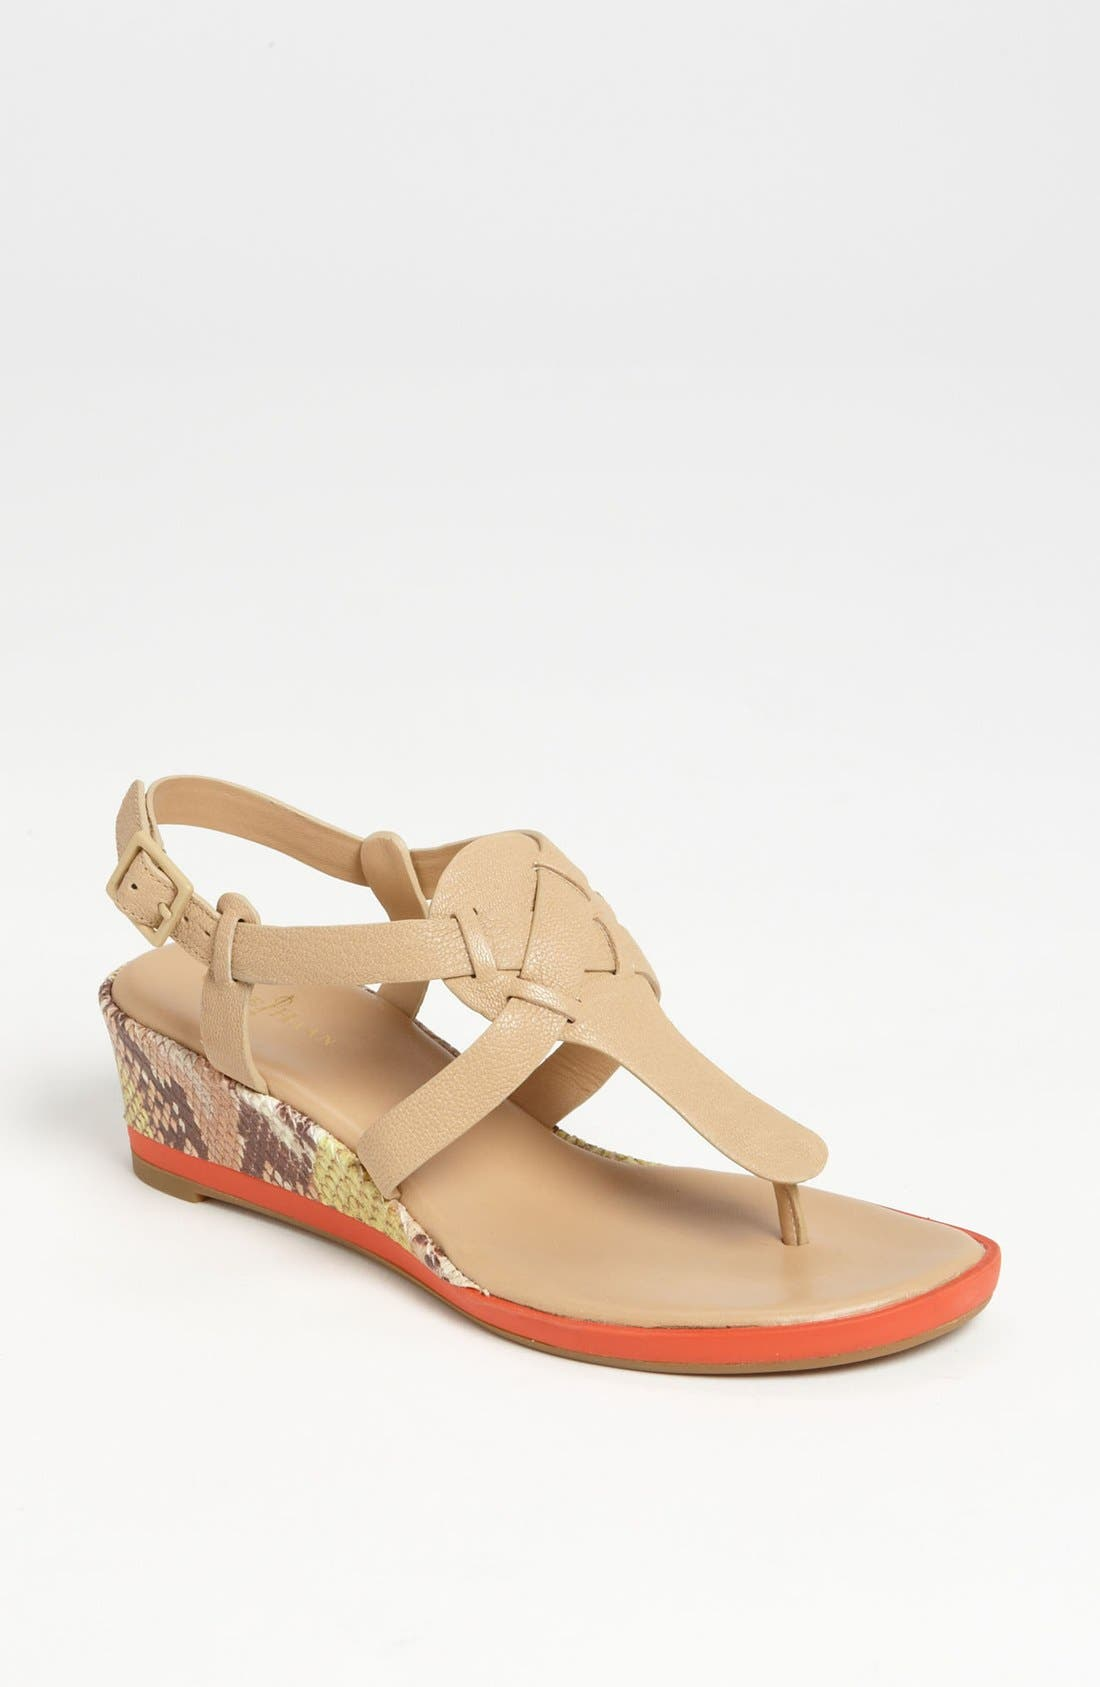 Main Image - Cole Haan 'Paley' Wedge